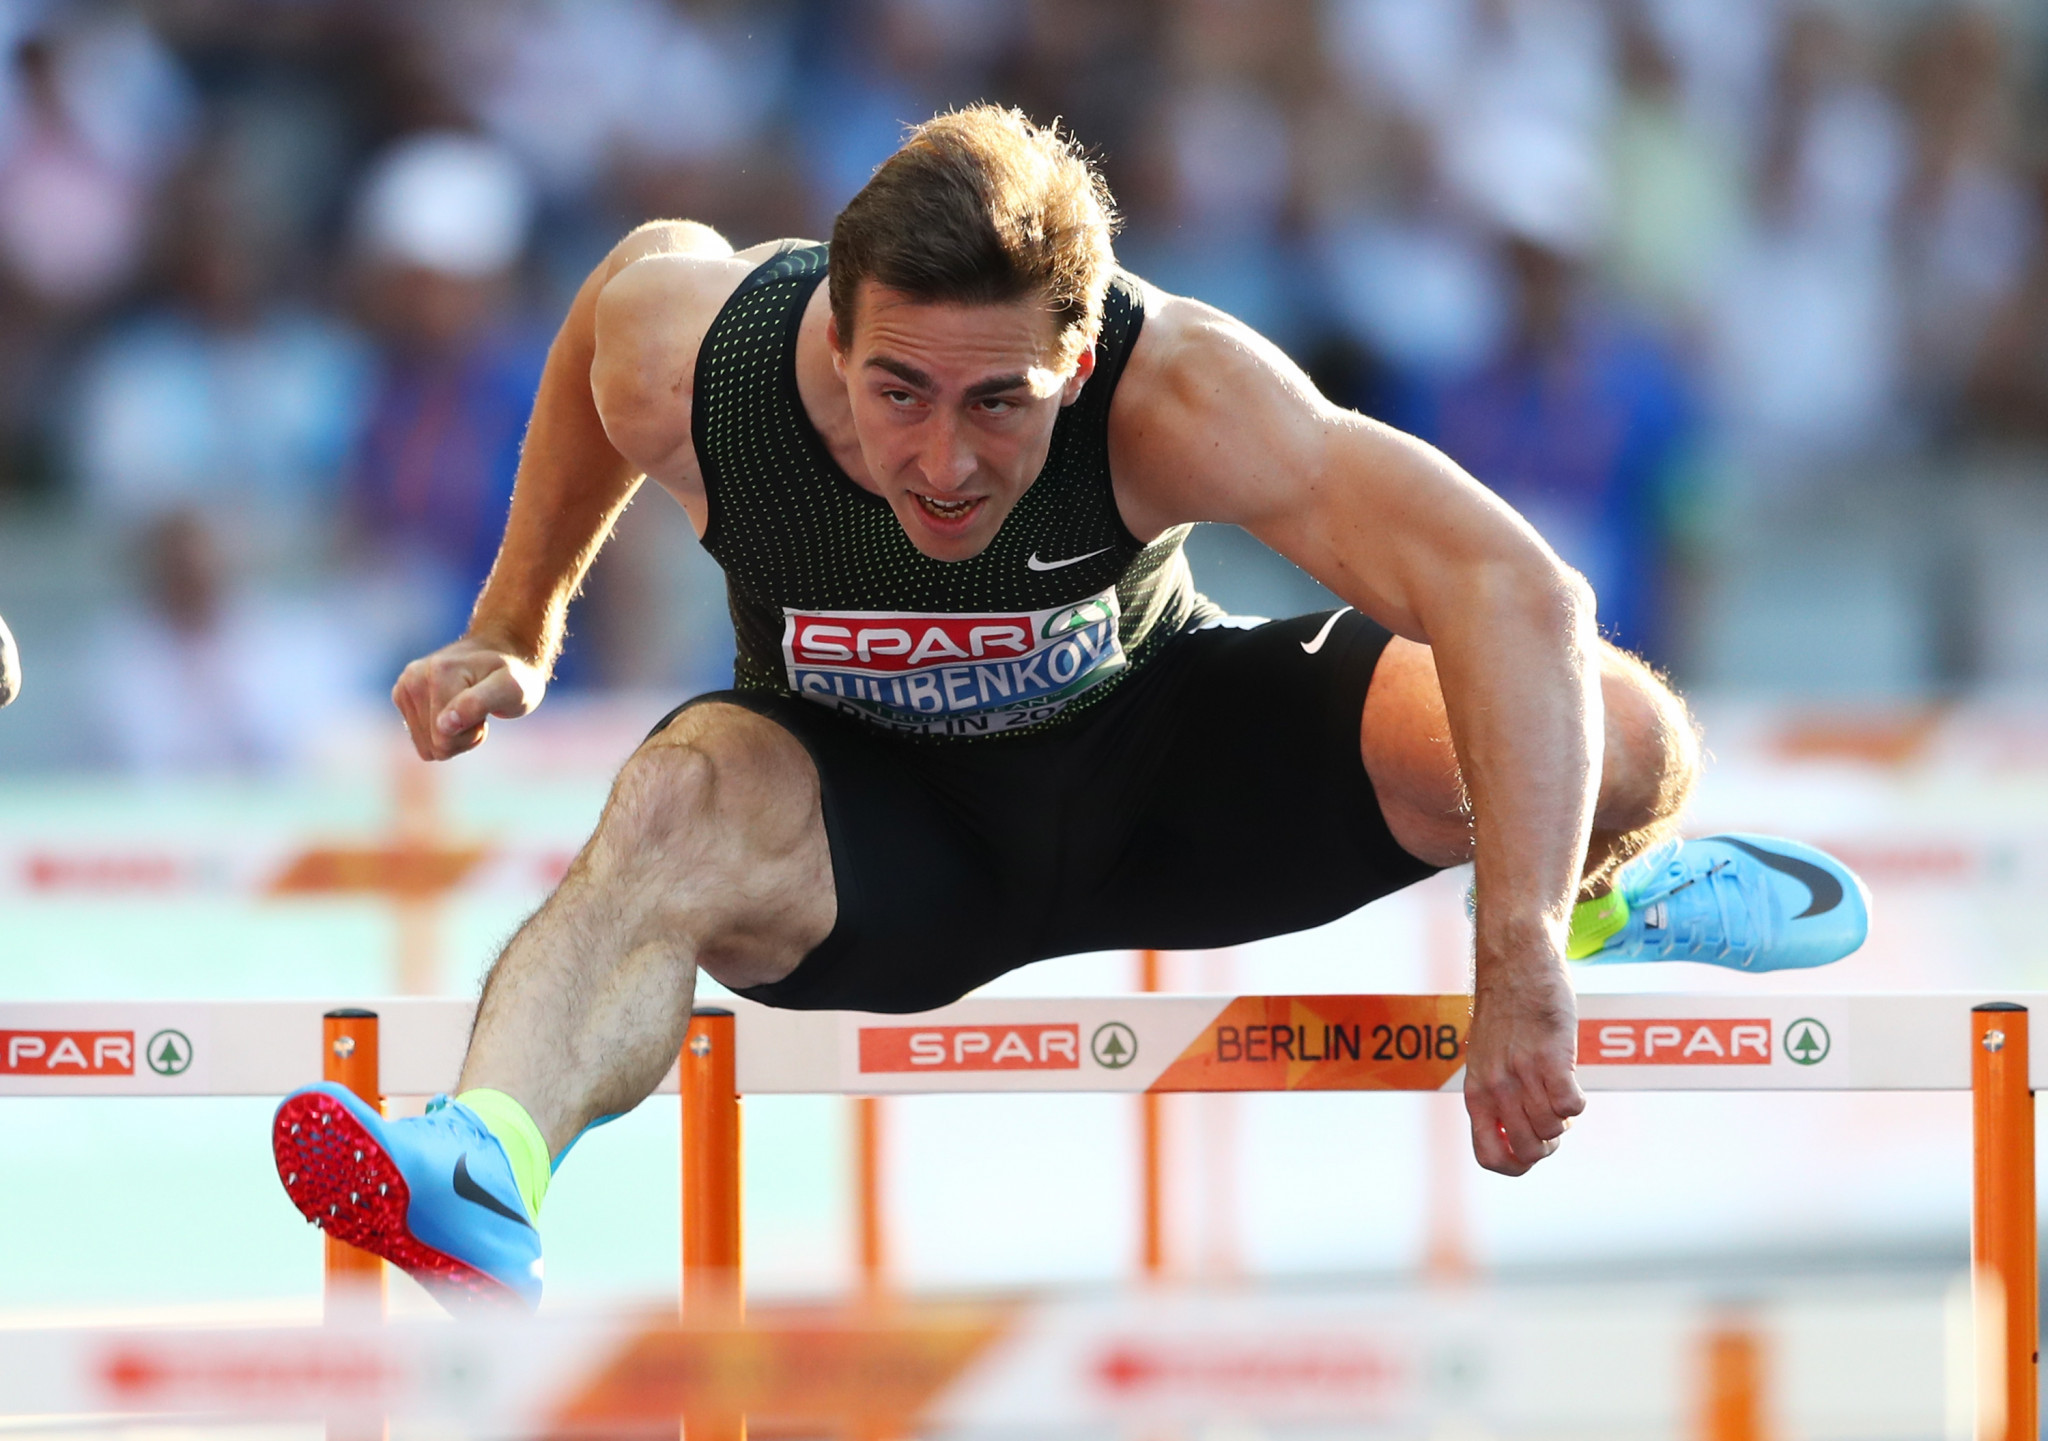 Russian competitors, like 110 metres hurdler Sergey Shubenkov, have been forced to compete as an